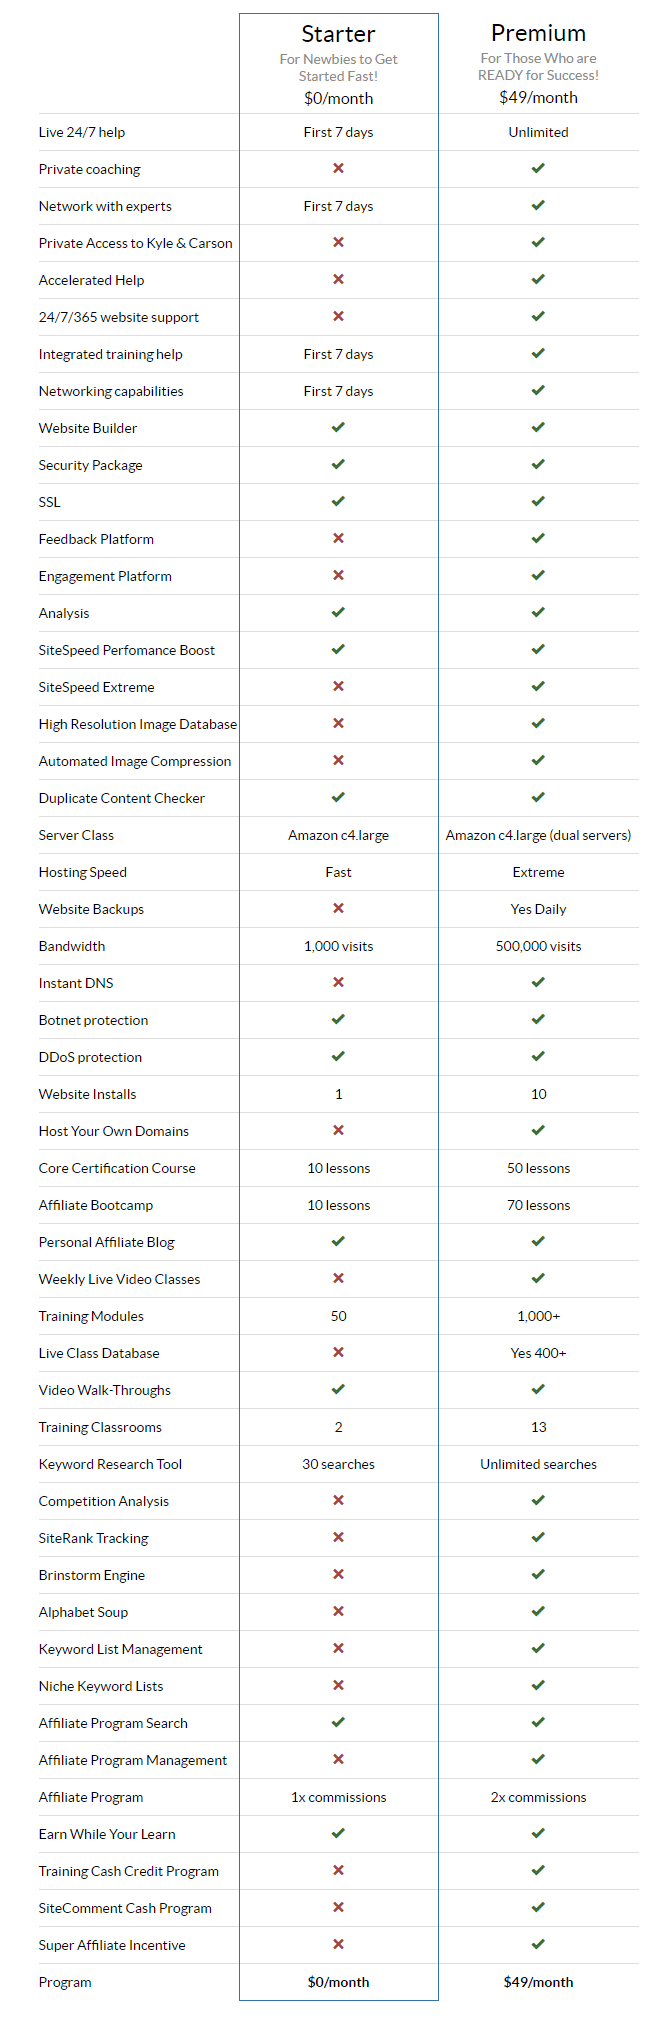 Wealthy Affiliate Starter to Premium Comparison Table